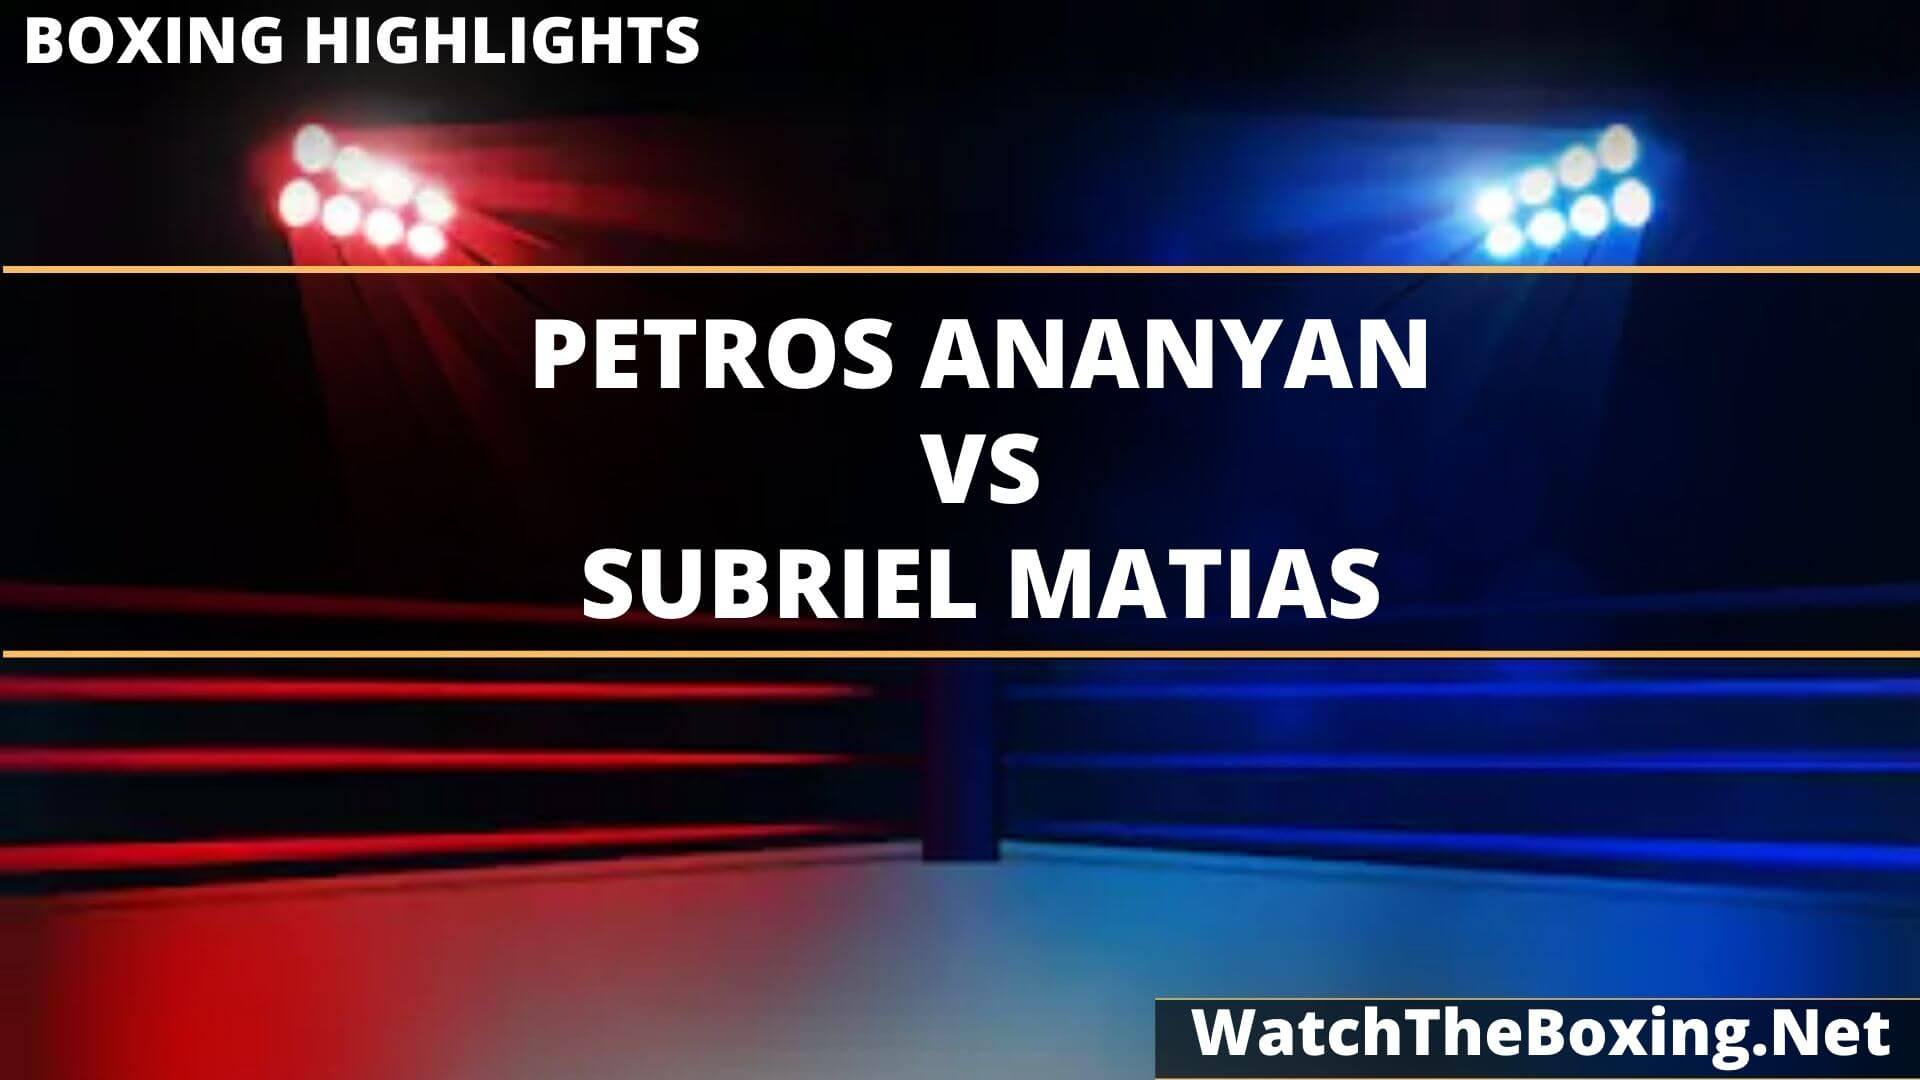 Petros Ananyan Vs Subriel Matias Highlights 2020